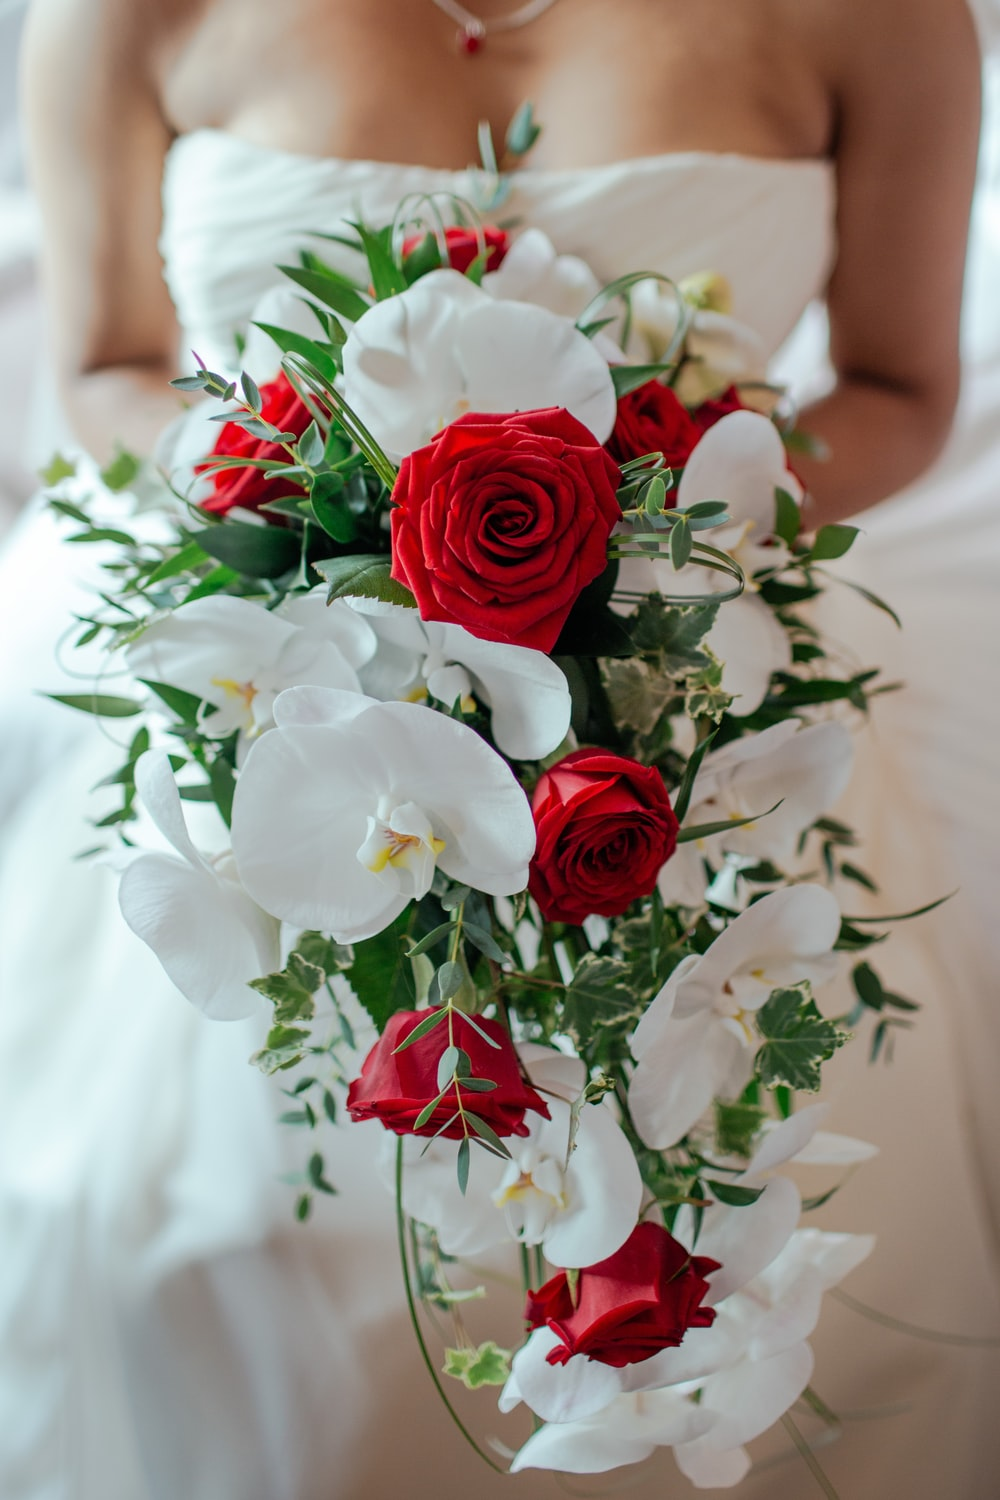 Wedding bouquet pictures download free images on unsplash wedding bouquet pictures izmirmasajfo